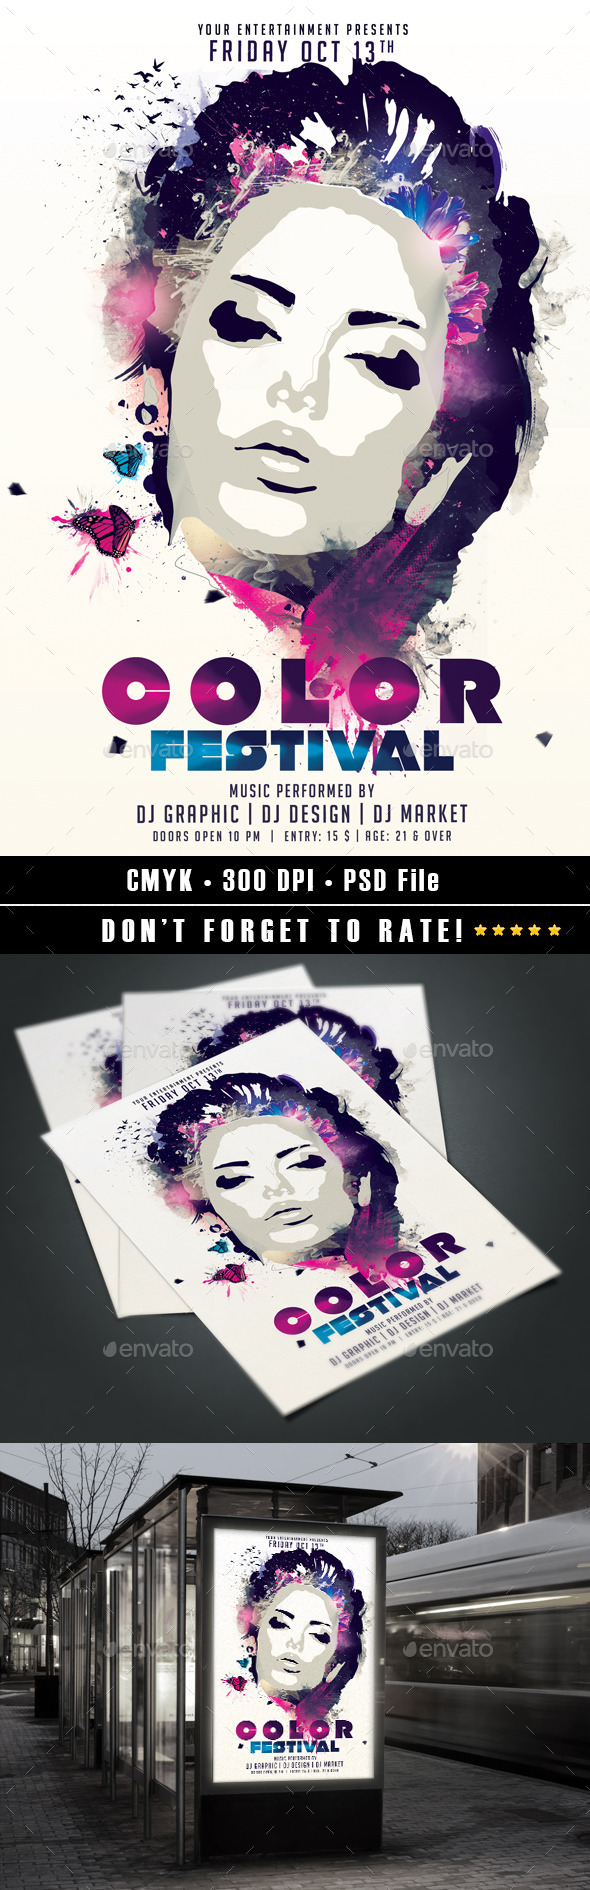 Color Festival v2 - Events Flyers